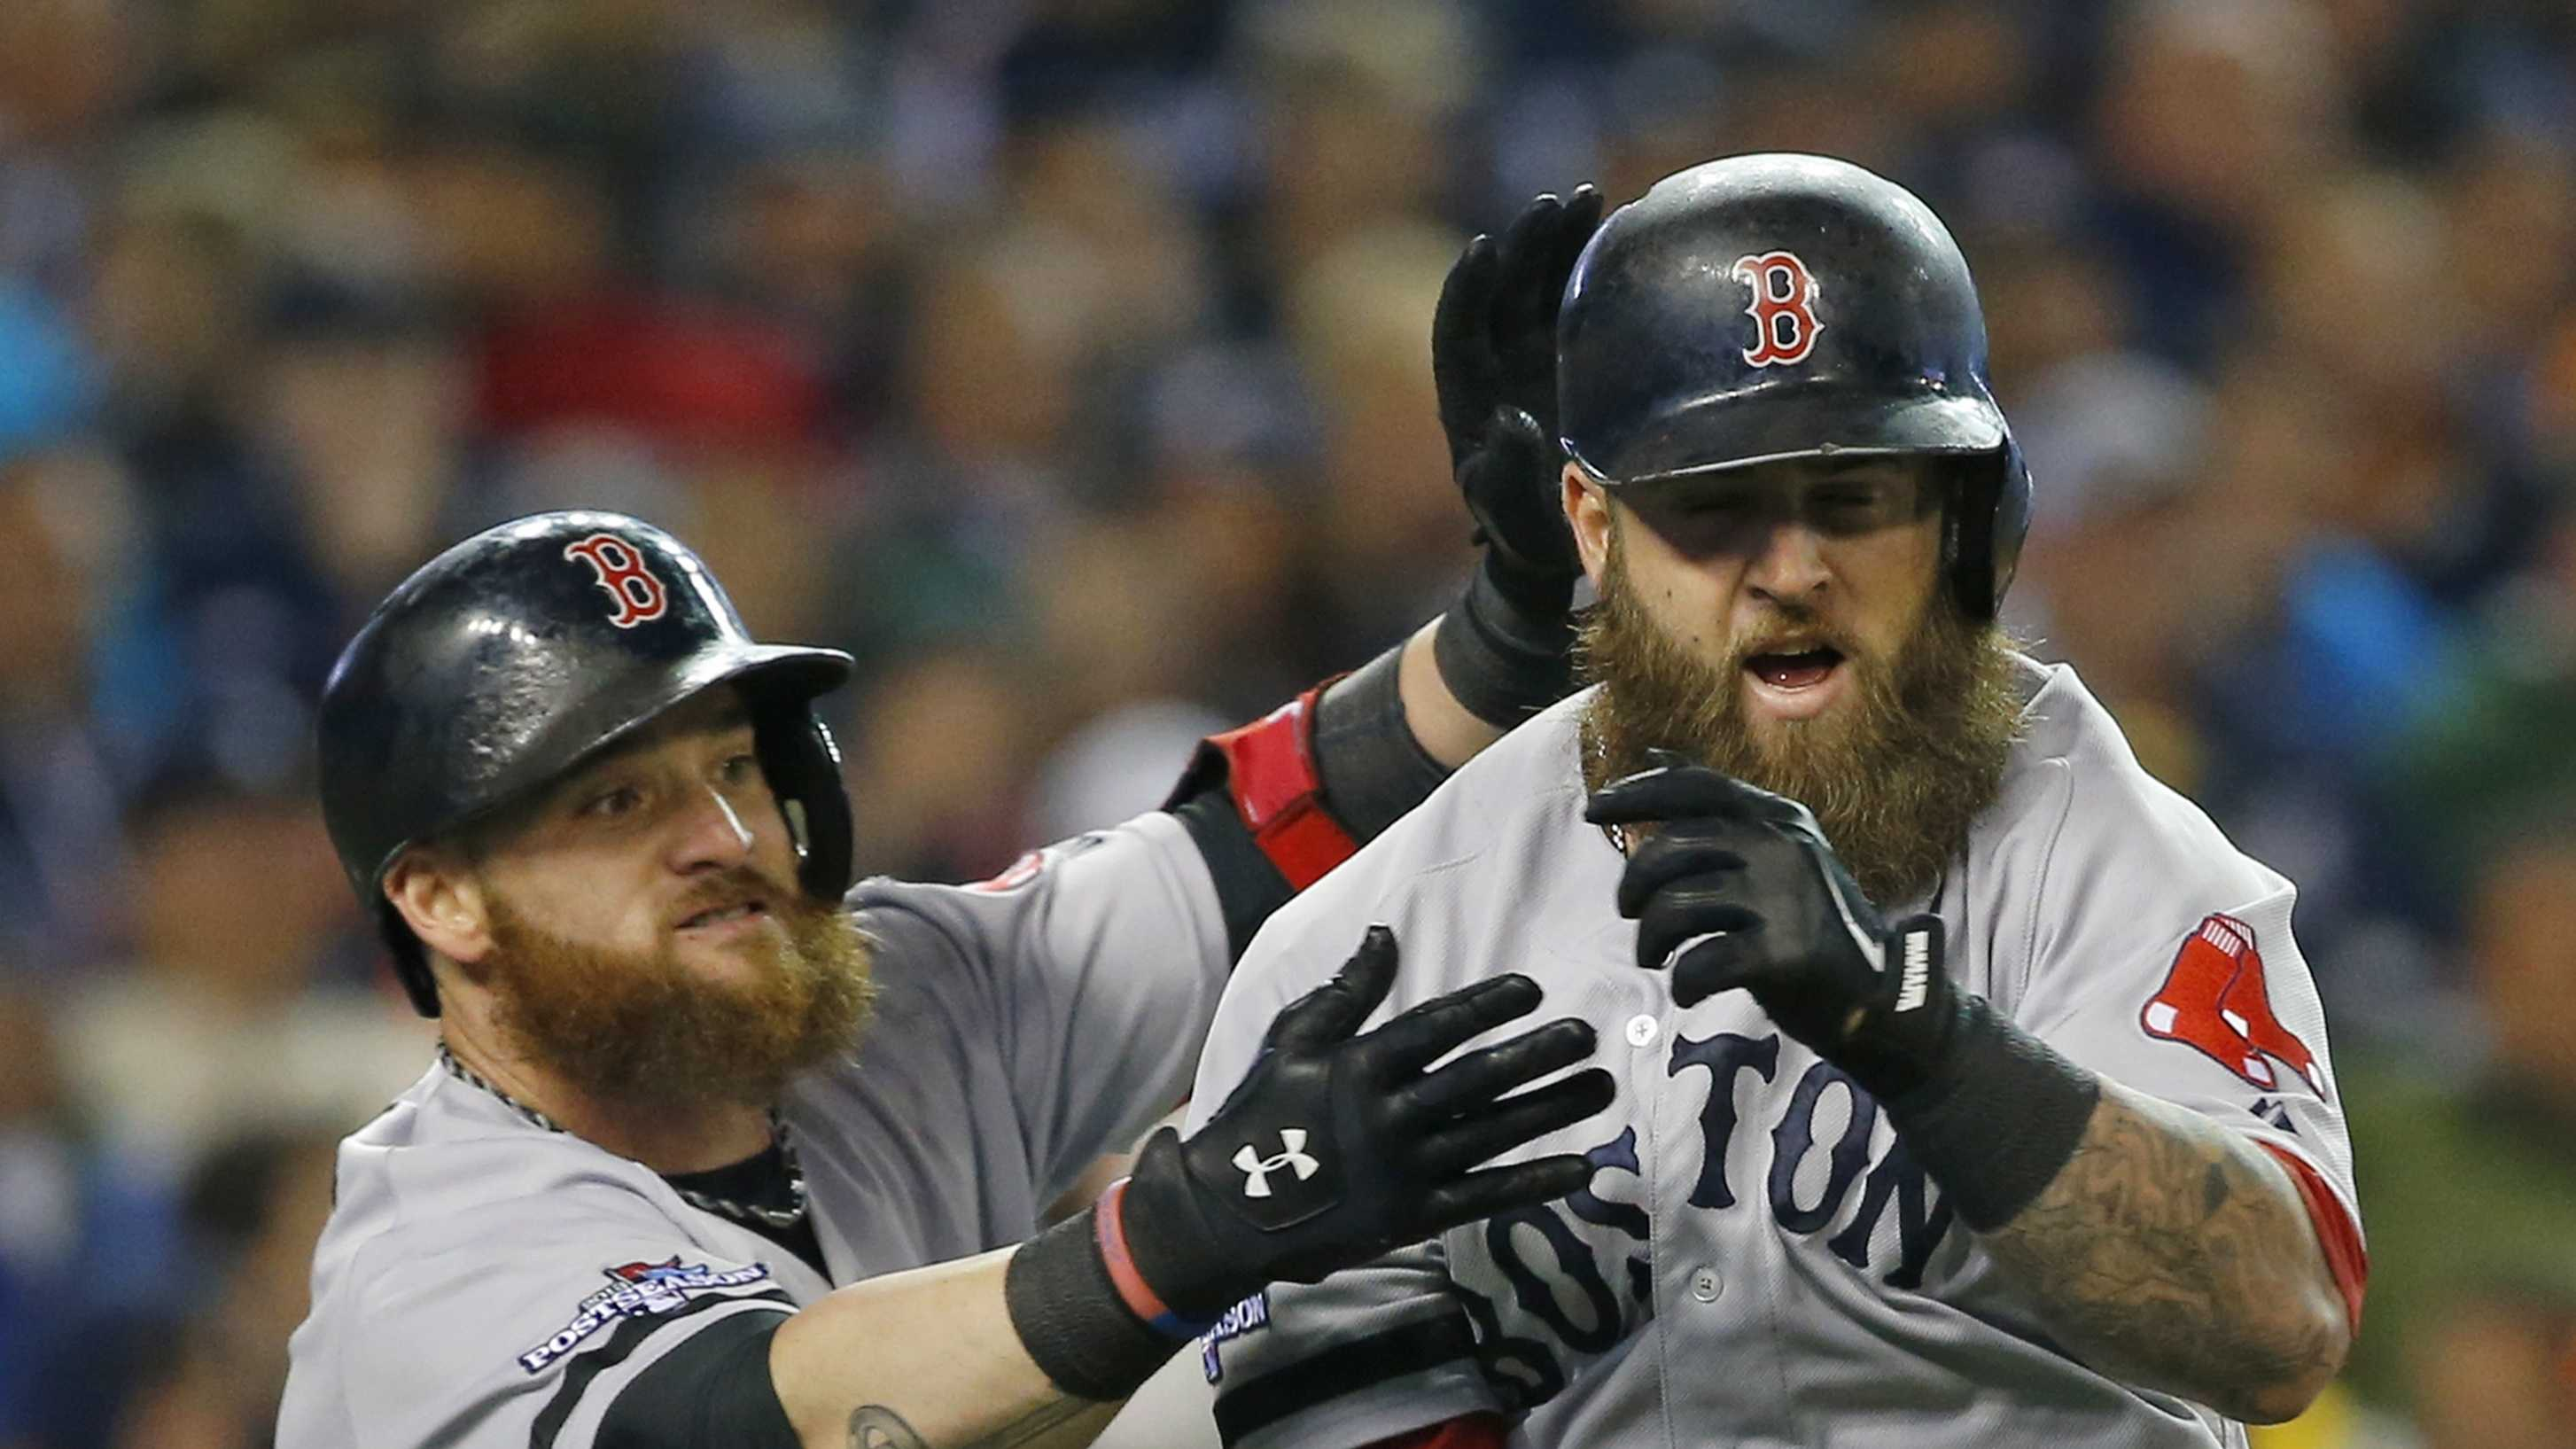 Boston Red Sox's Mike Napoli, right, is greeted by Jonny Gomes following a home run by Napoli in the second inning during Game 5 of the American League baseball championship series against the Detroit Tigers, Oct. 17, 2013, in Detroit.